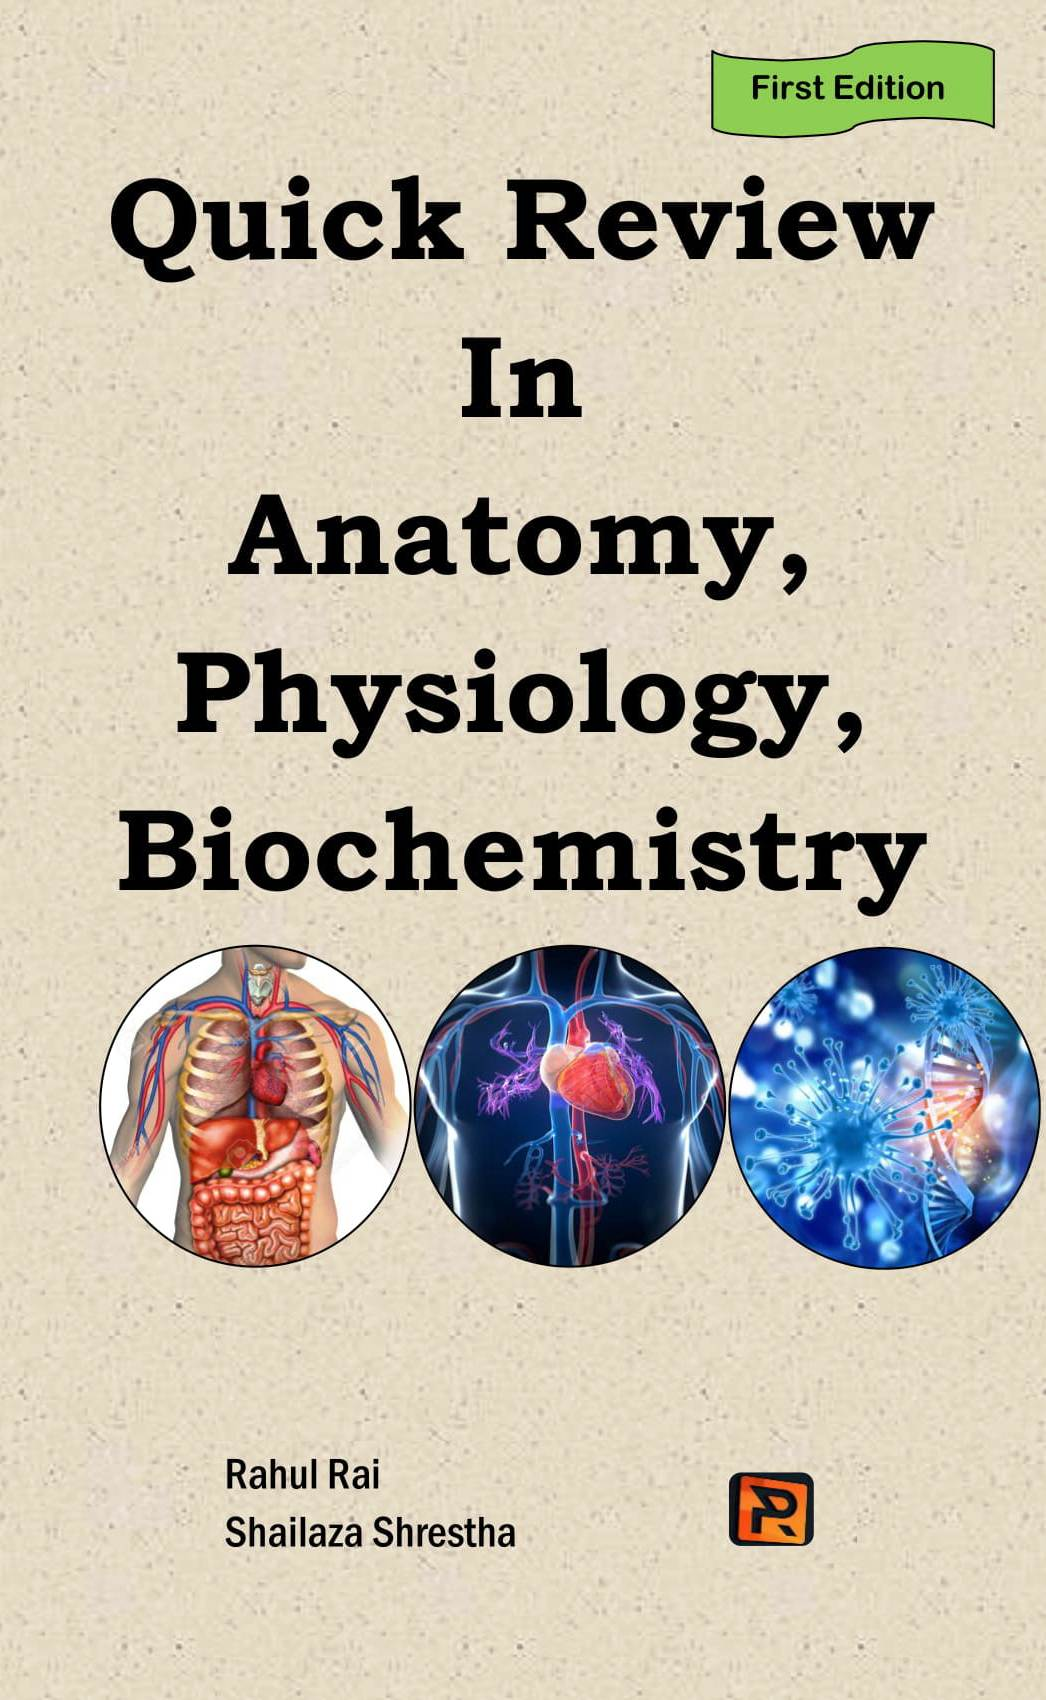 Quick Review in Anatomy, Physiology, Biochemistry